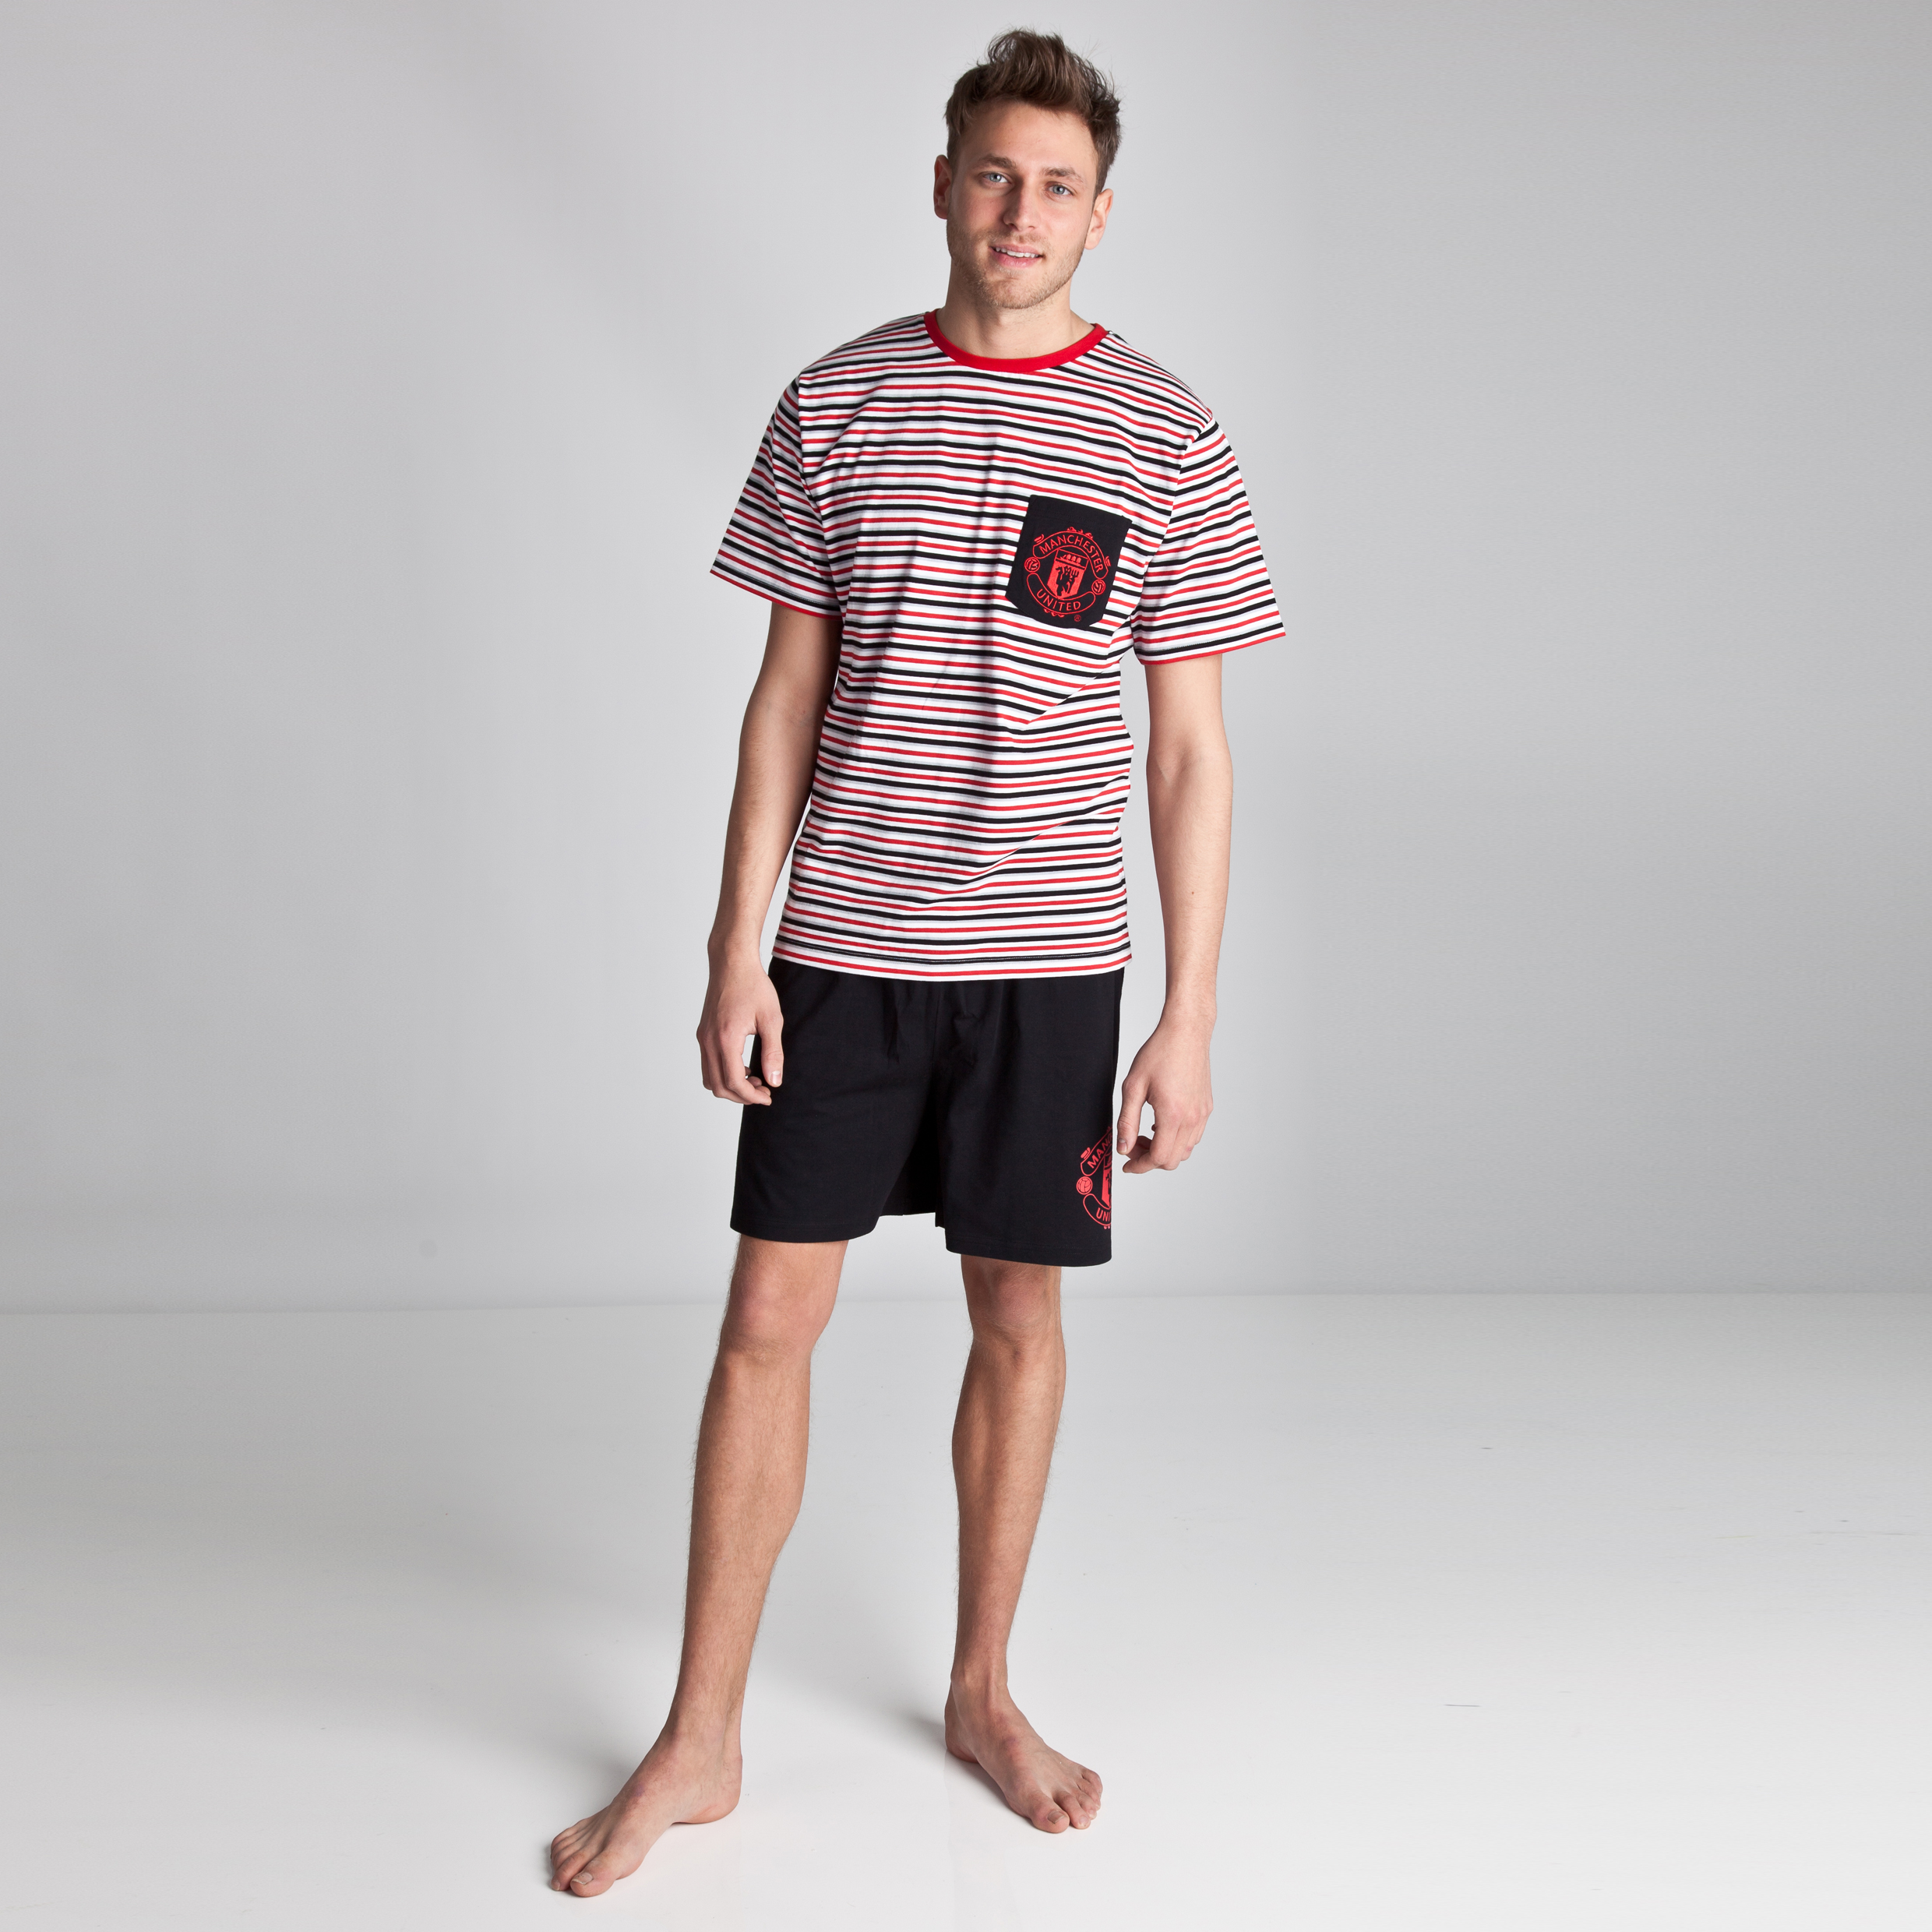 Manchester United Striped Shortie Pyjamas - Black/Red/White - Mens